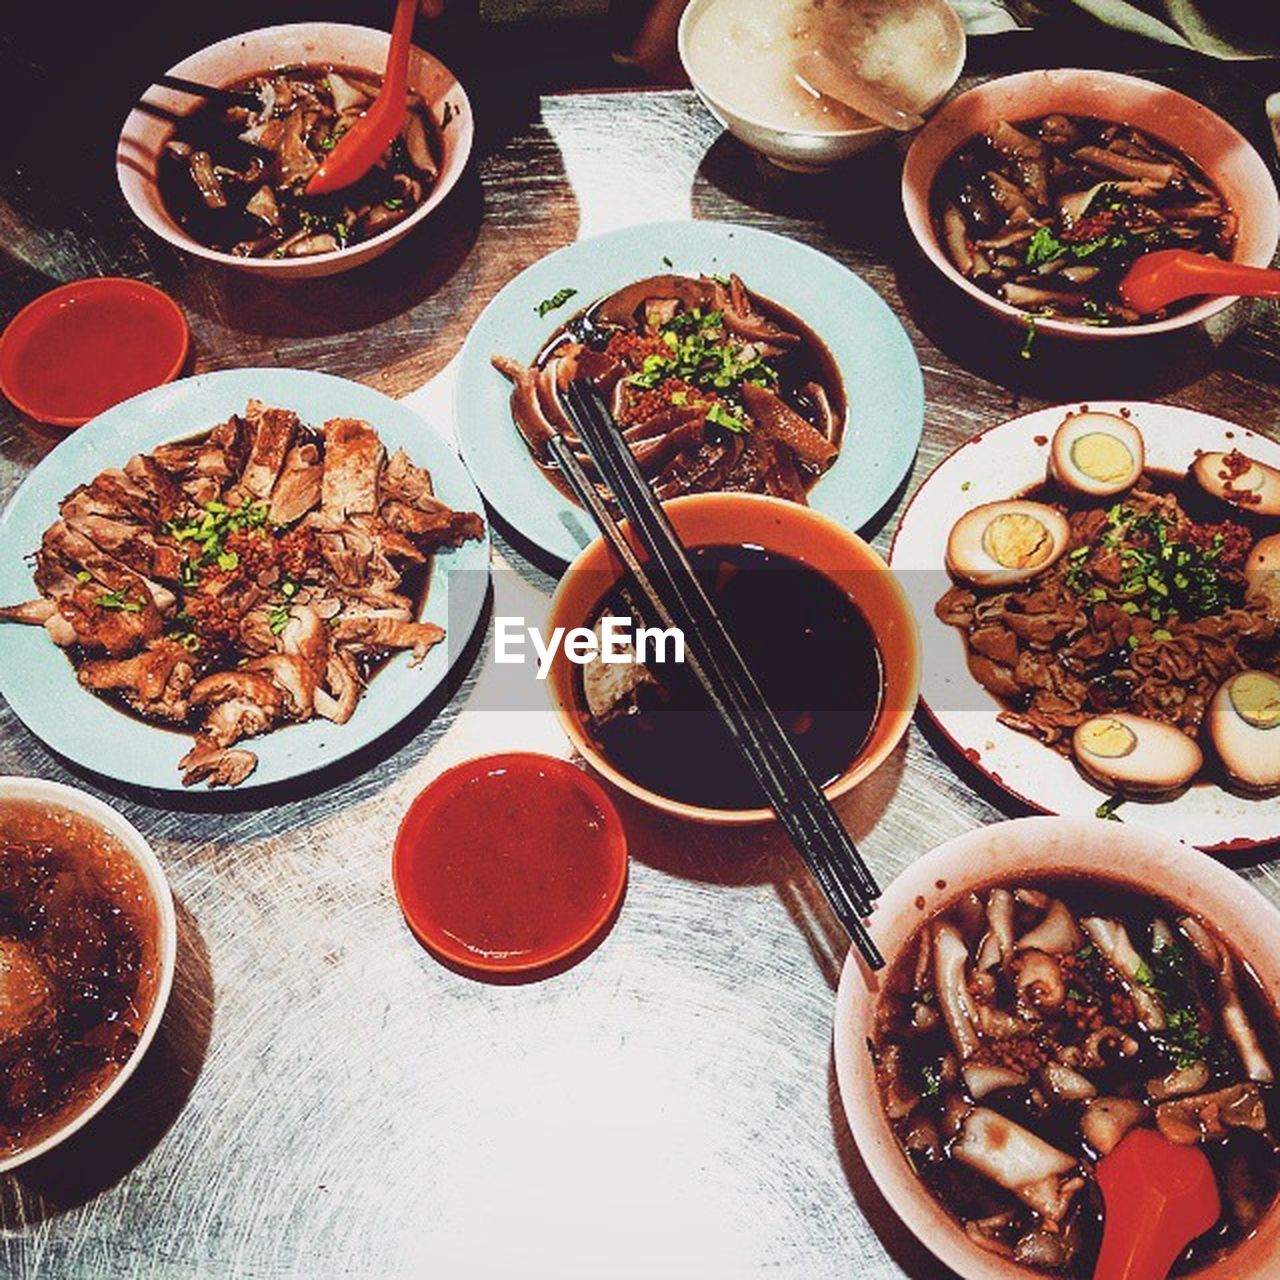 food, food and drink, table, ready-to-eat, serving size, high angle view, bowl, indoors, meat, healthy eating, plate, no people, soup, chopsticks, chinese food, meal, freshness, day, close-up